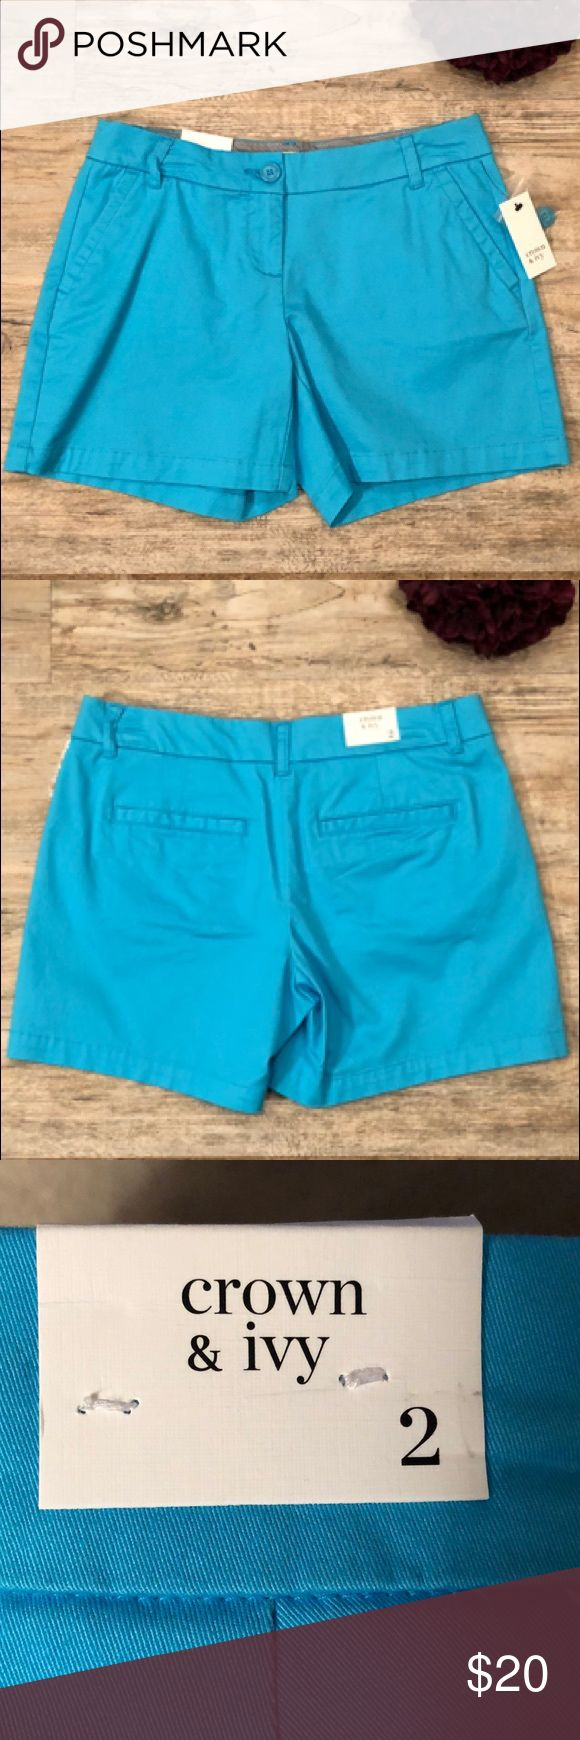 """⚓️Adorable Aqua Shorts Endless versatility and the classic comfort of cotton, these solid aqua shorts coordinate well with just about any top in your closet. BNWT!  Features: 5"""" inseam Button closure, with belt loops Slant pockets, welt pockets Classic fit  Twill fabric Crown & Ivy Shorts"""